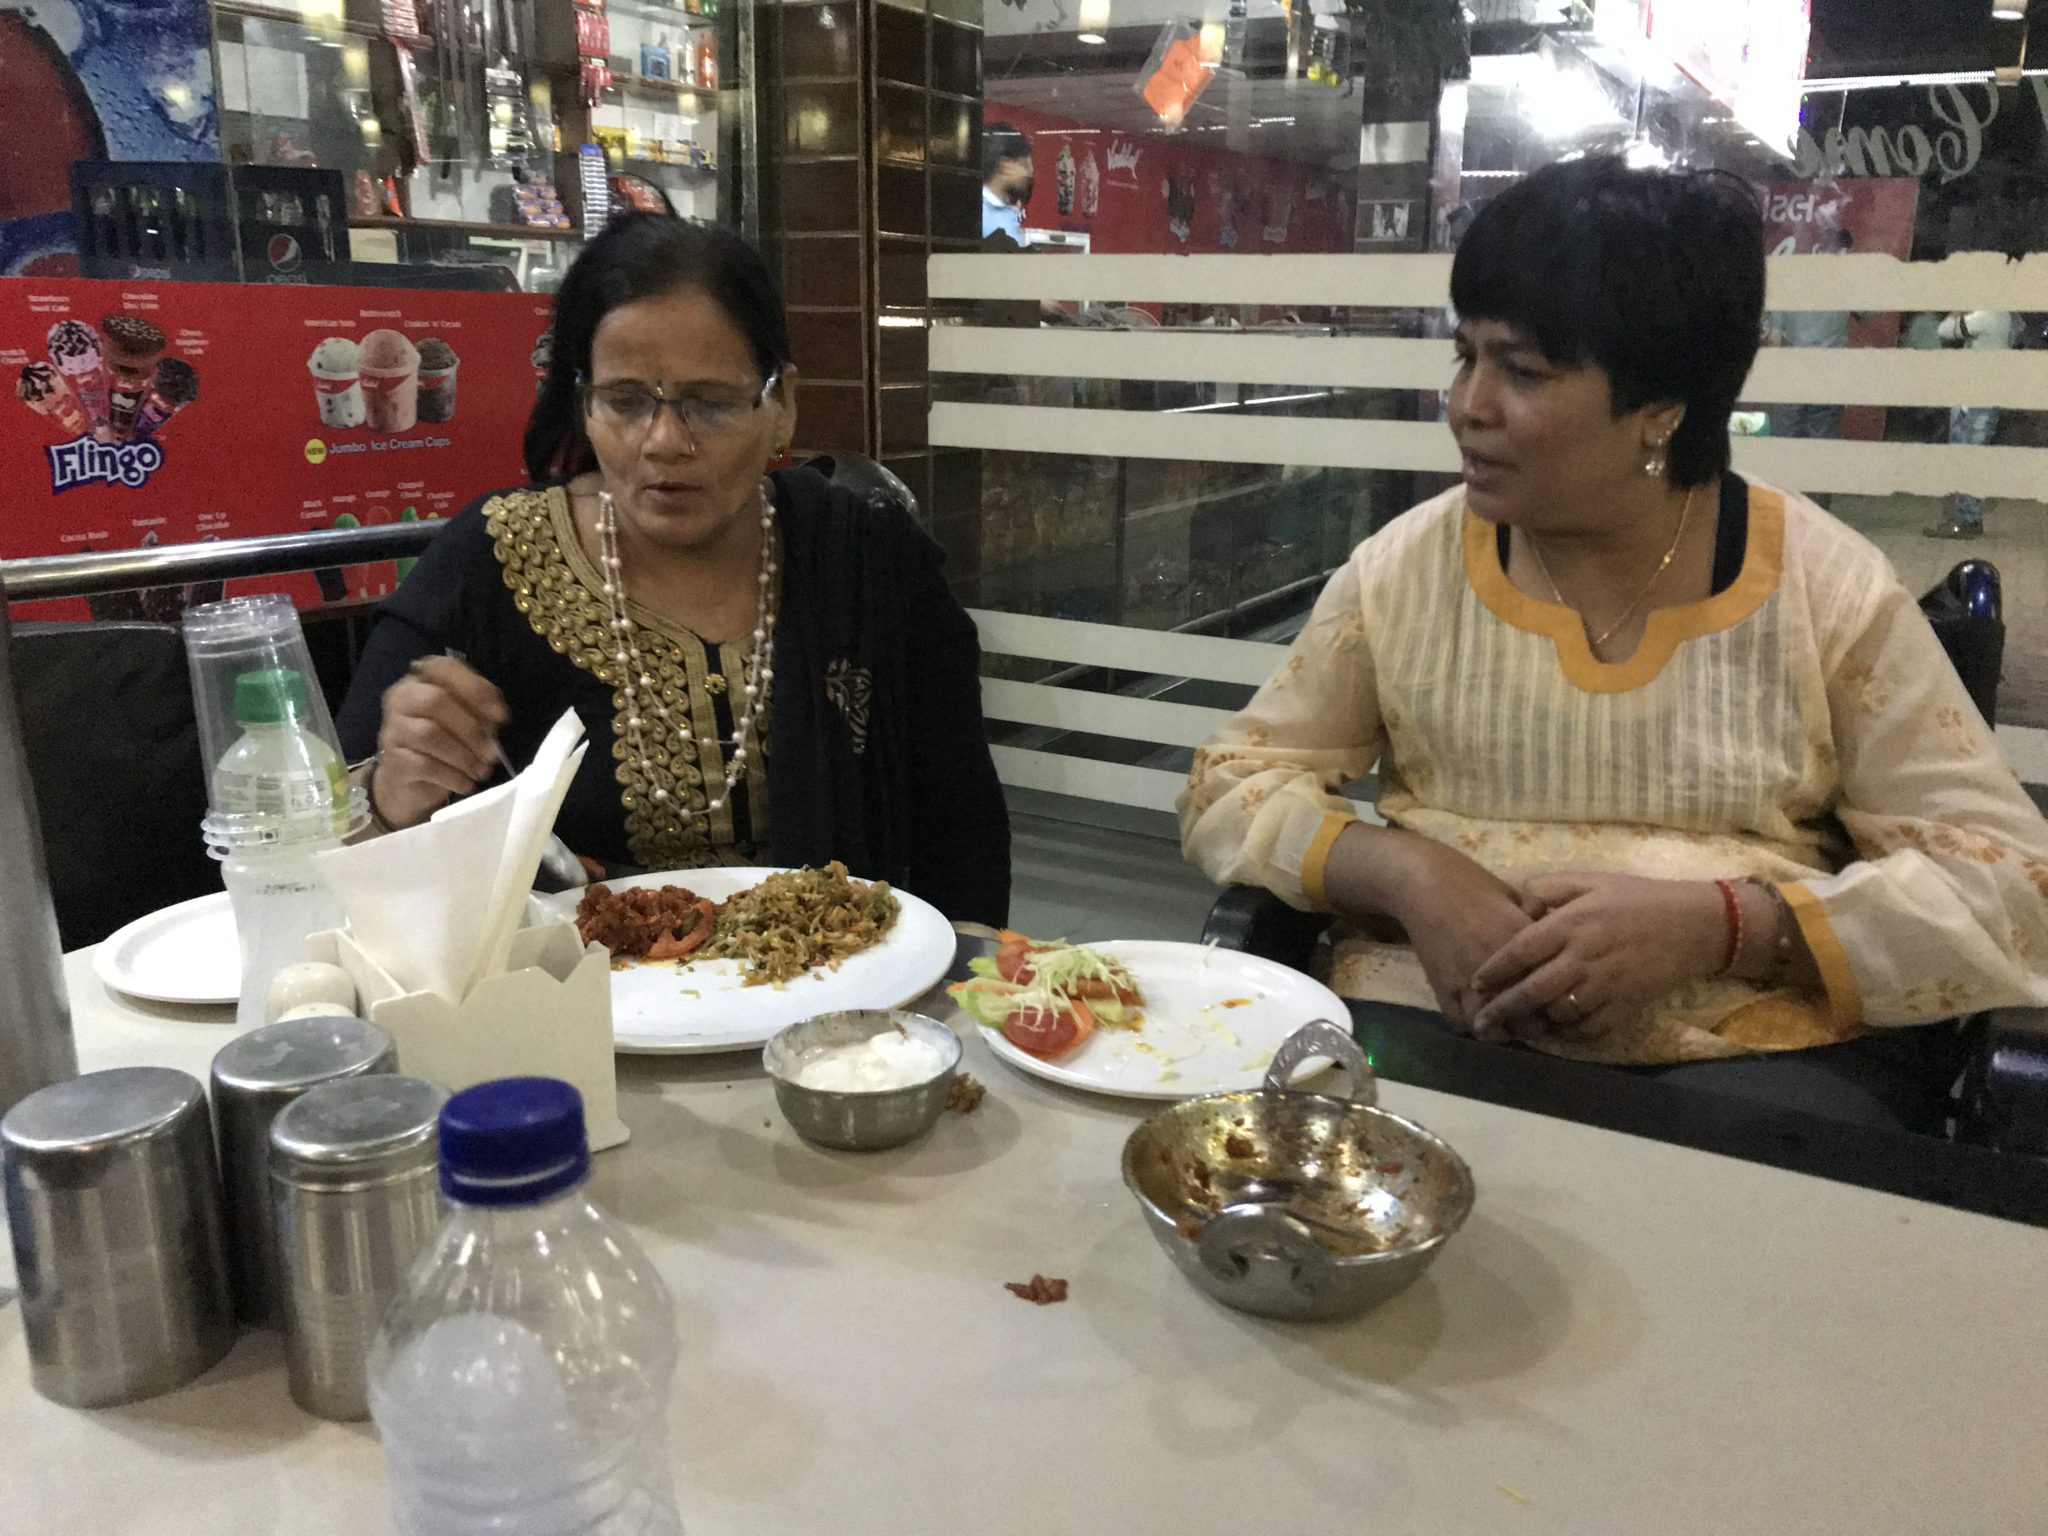 Jaggu at the restaurant